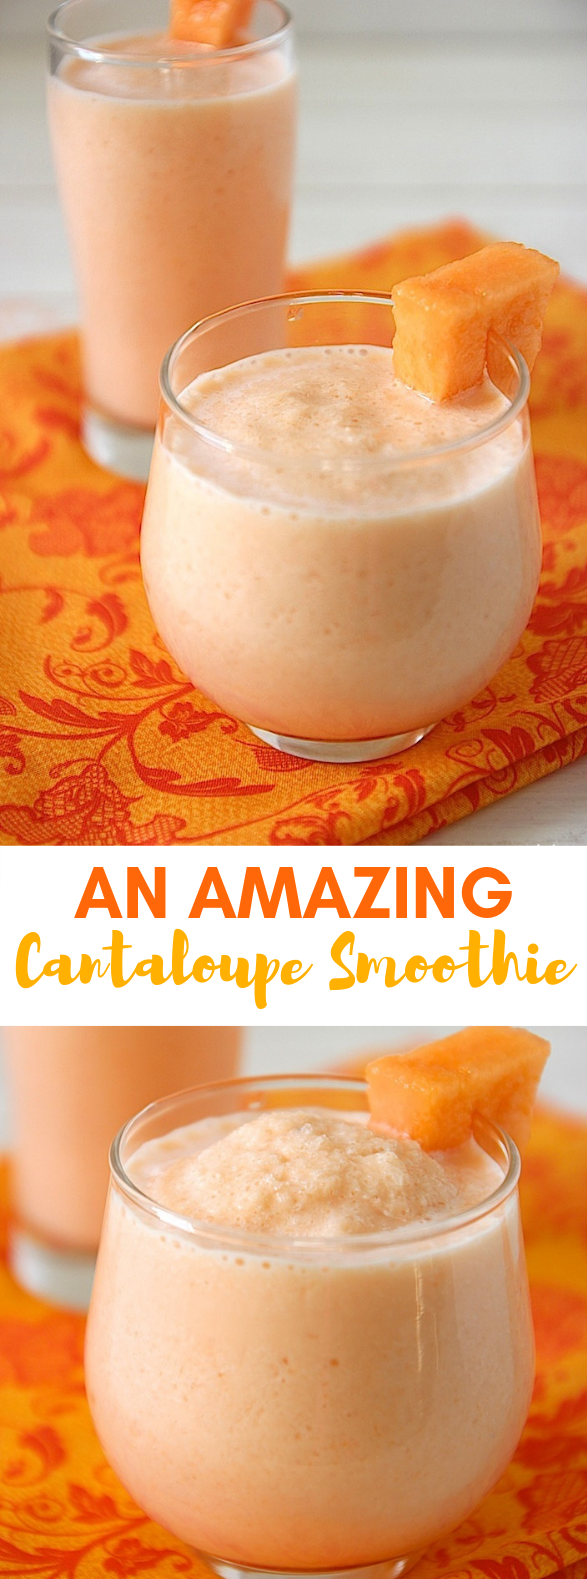 AN AMAZING CANTALOUPE SMOOTHIE RECIPE